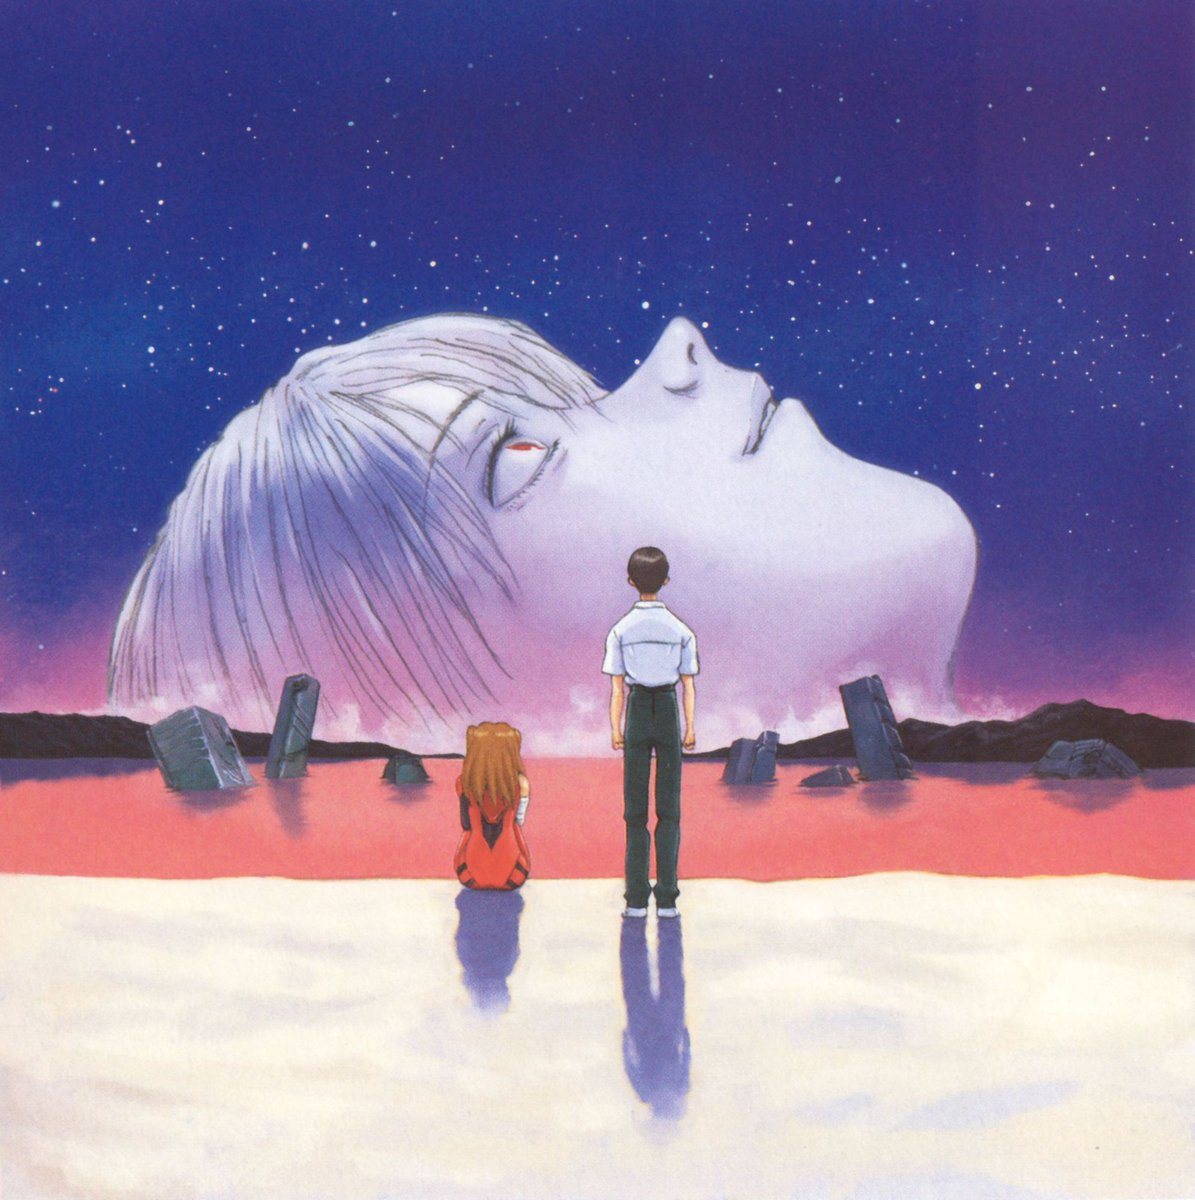 Neon Genesis Evangelion will return, for the last time, in 2020 https://t.co/T4nQm967SV